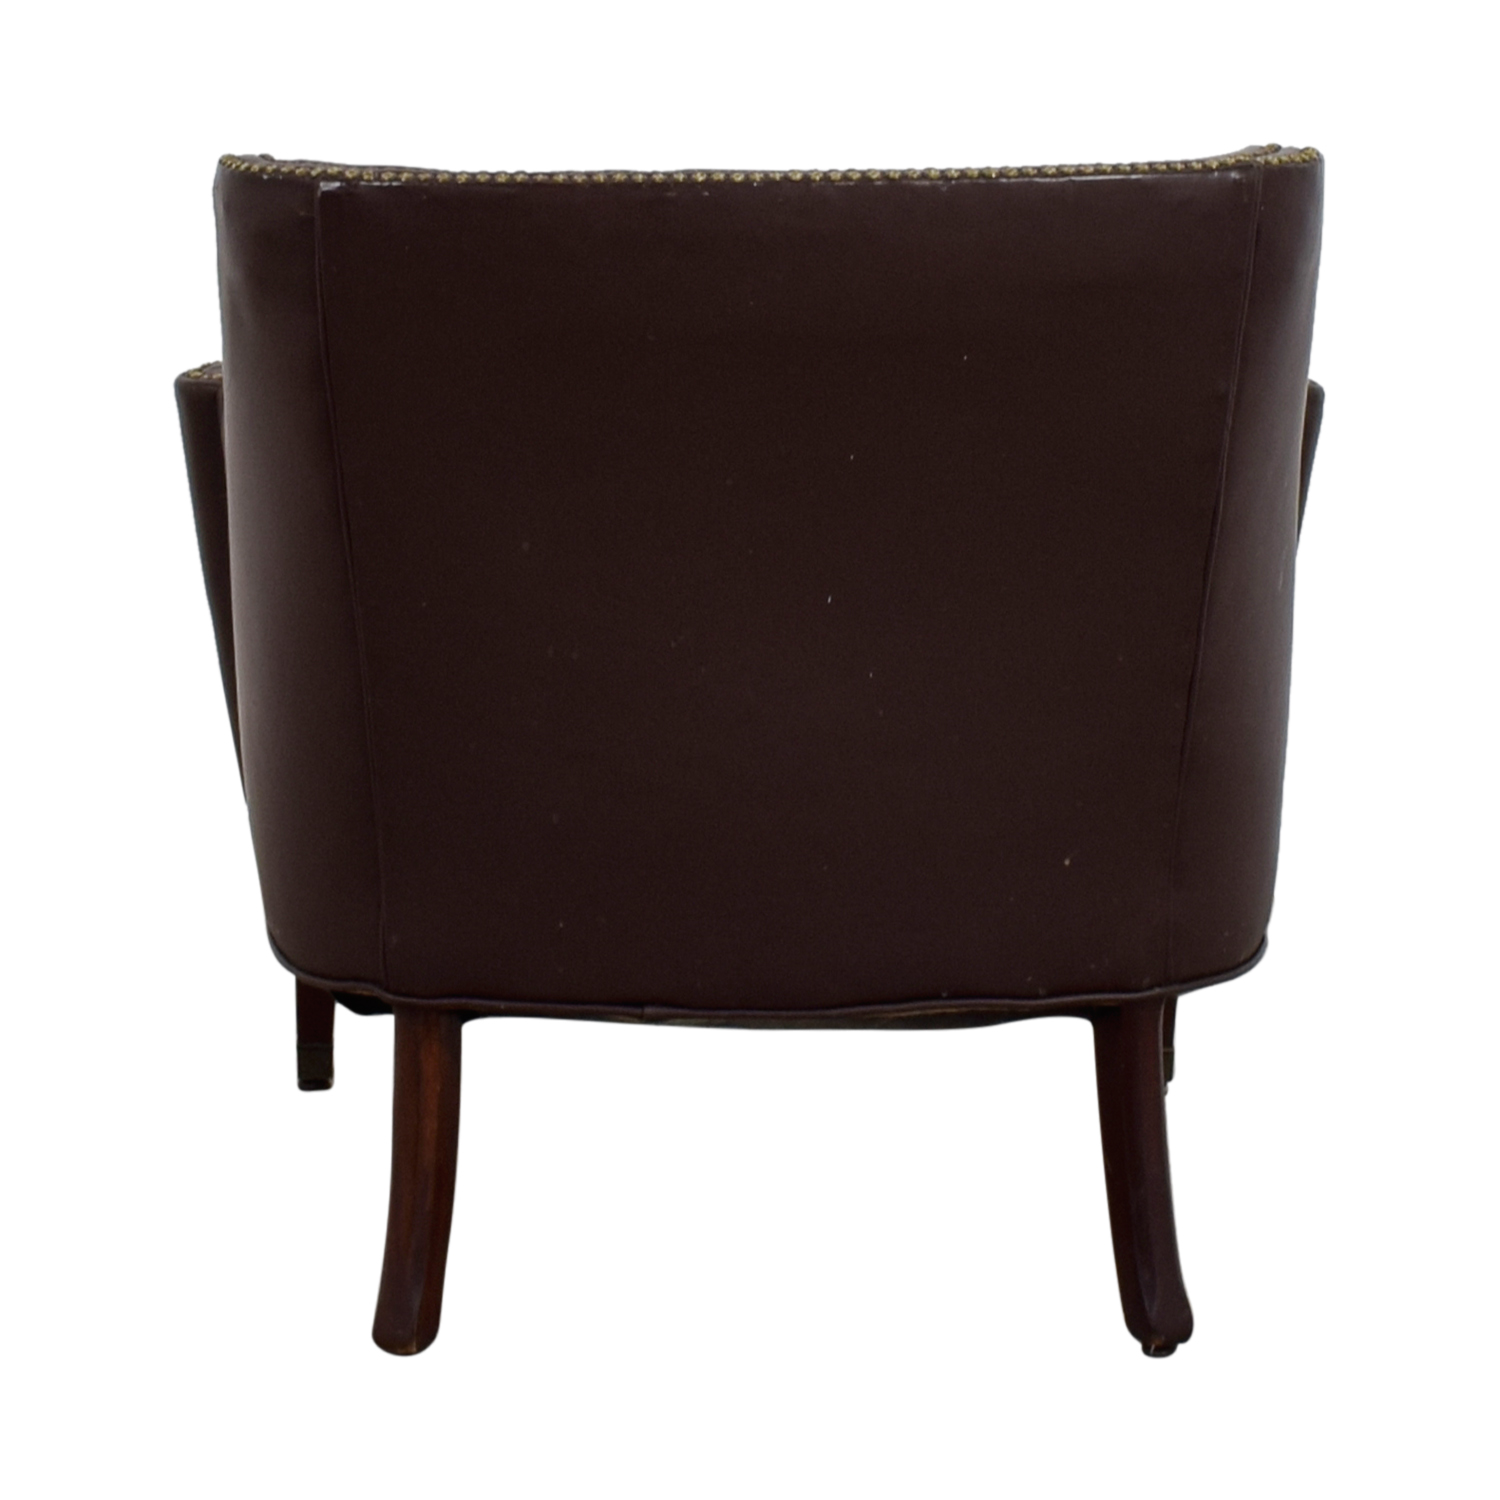 pier 1 leather chair glider chairs canada 70 off imports brown